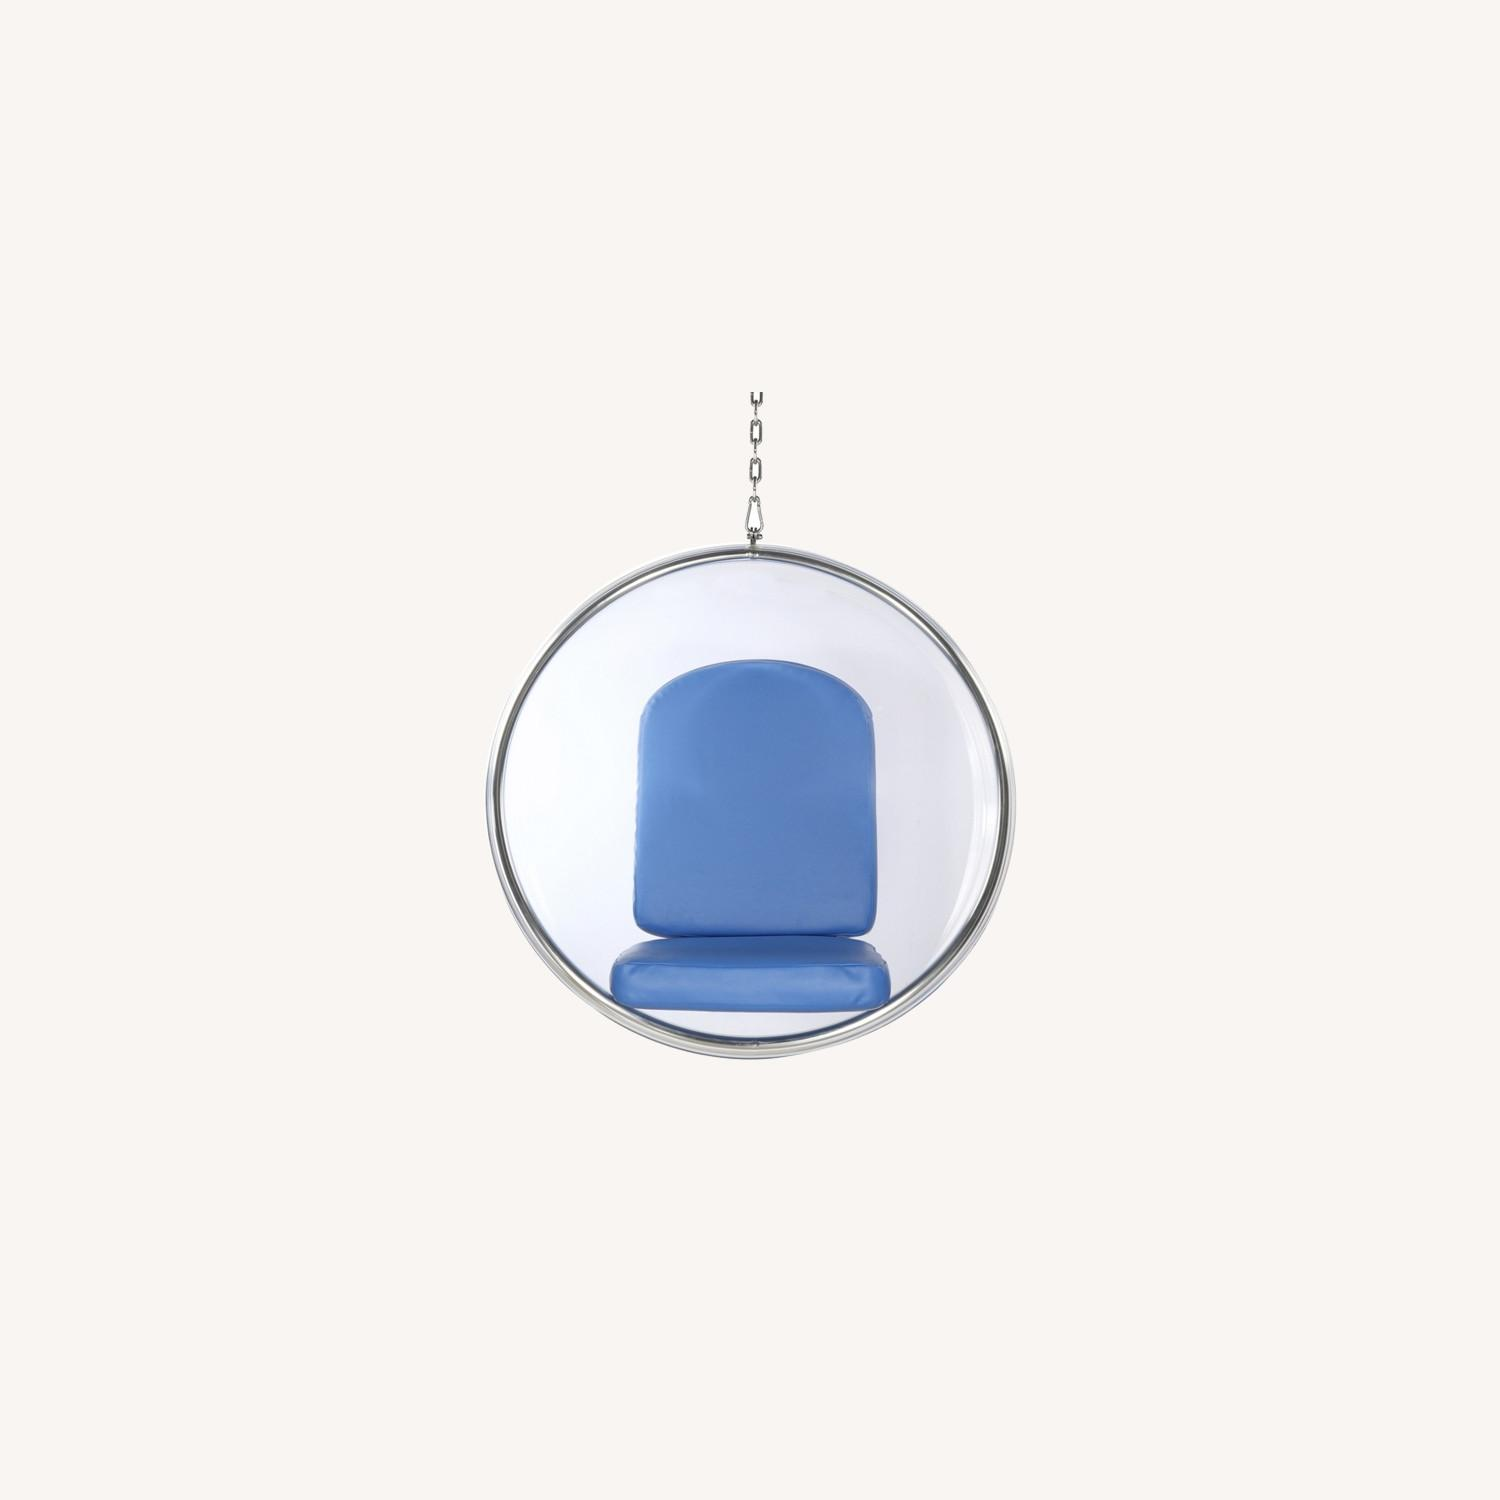 Hanging Chair In Clear Acrylic & Blue PU Leather - image-7